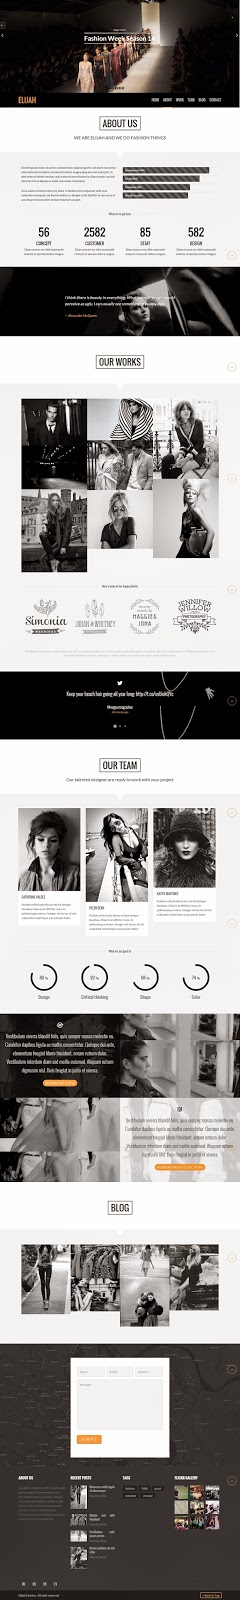 Premium WordPress Landing Page Template 2015